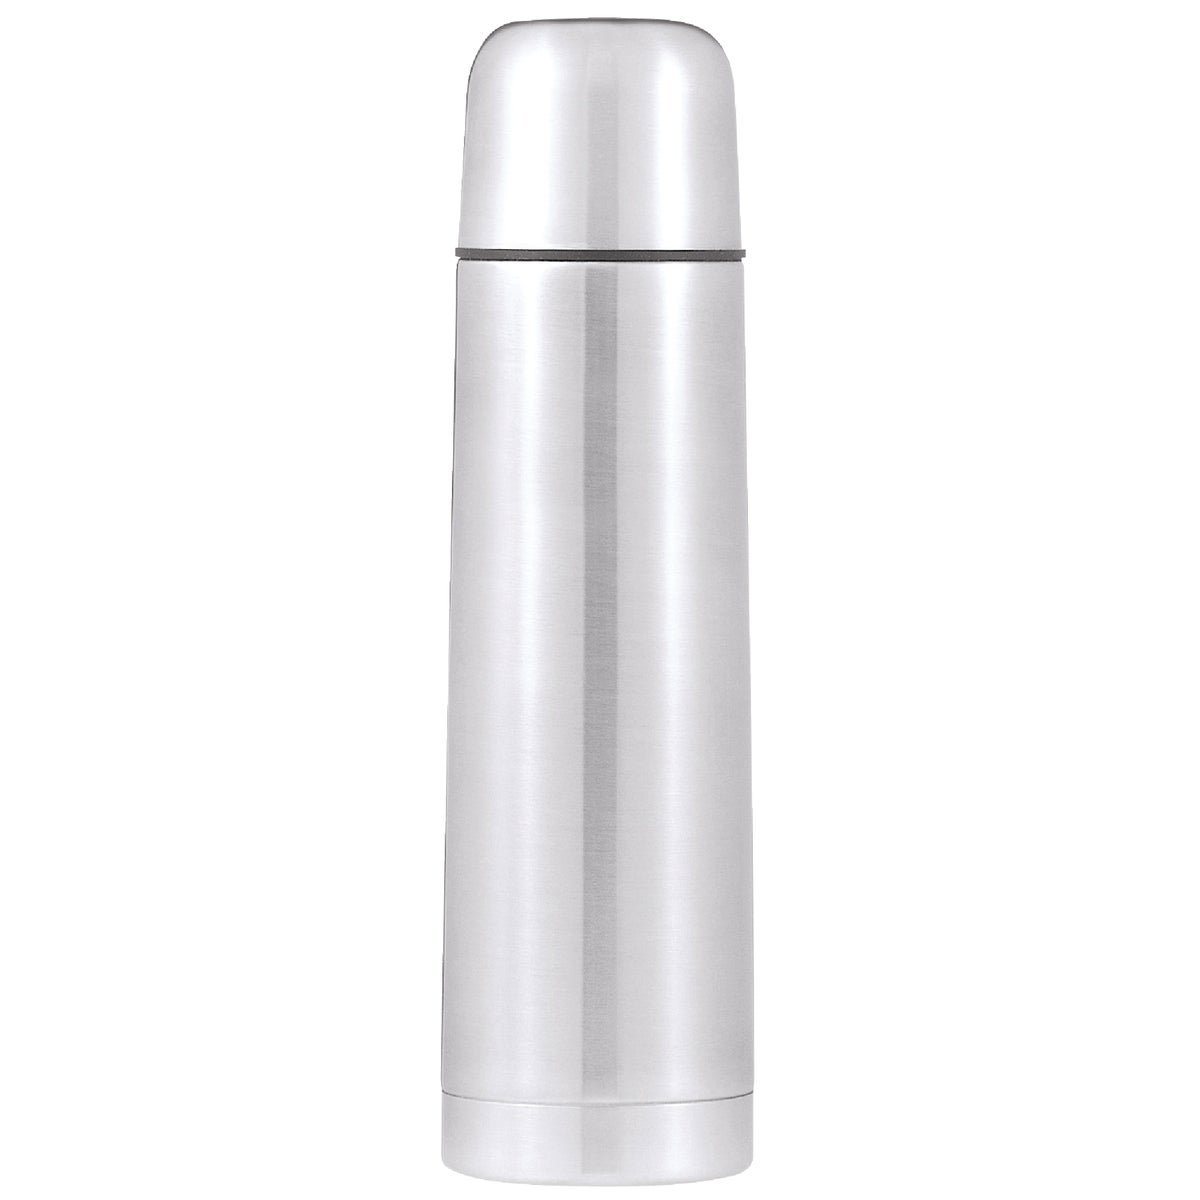 17OZ BRIEFCS VAC BOTTLE - DF2150TRI6 by Thermos Co